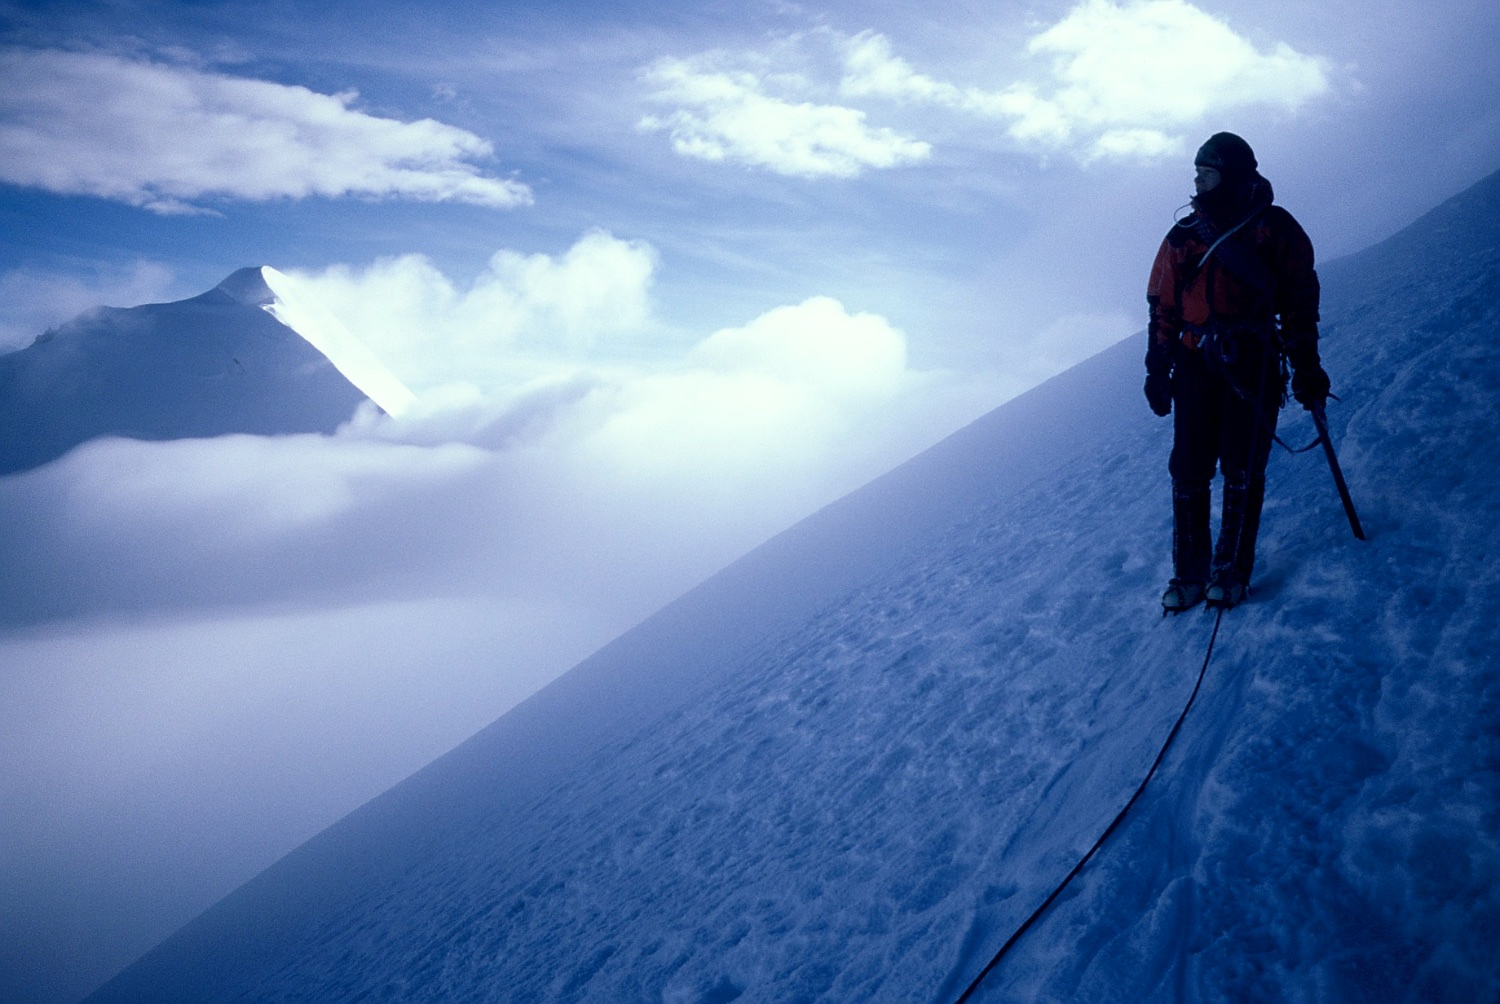 Tash descending Illimani, glad to be out of the winds up high